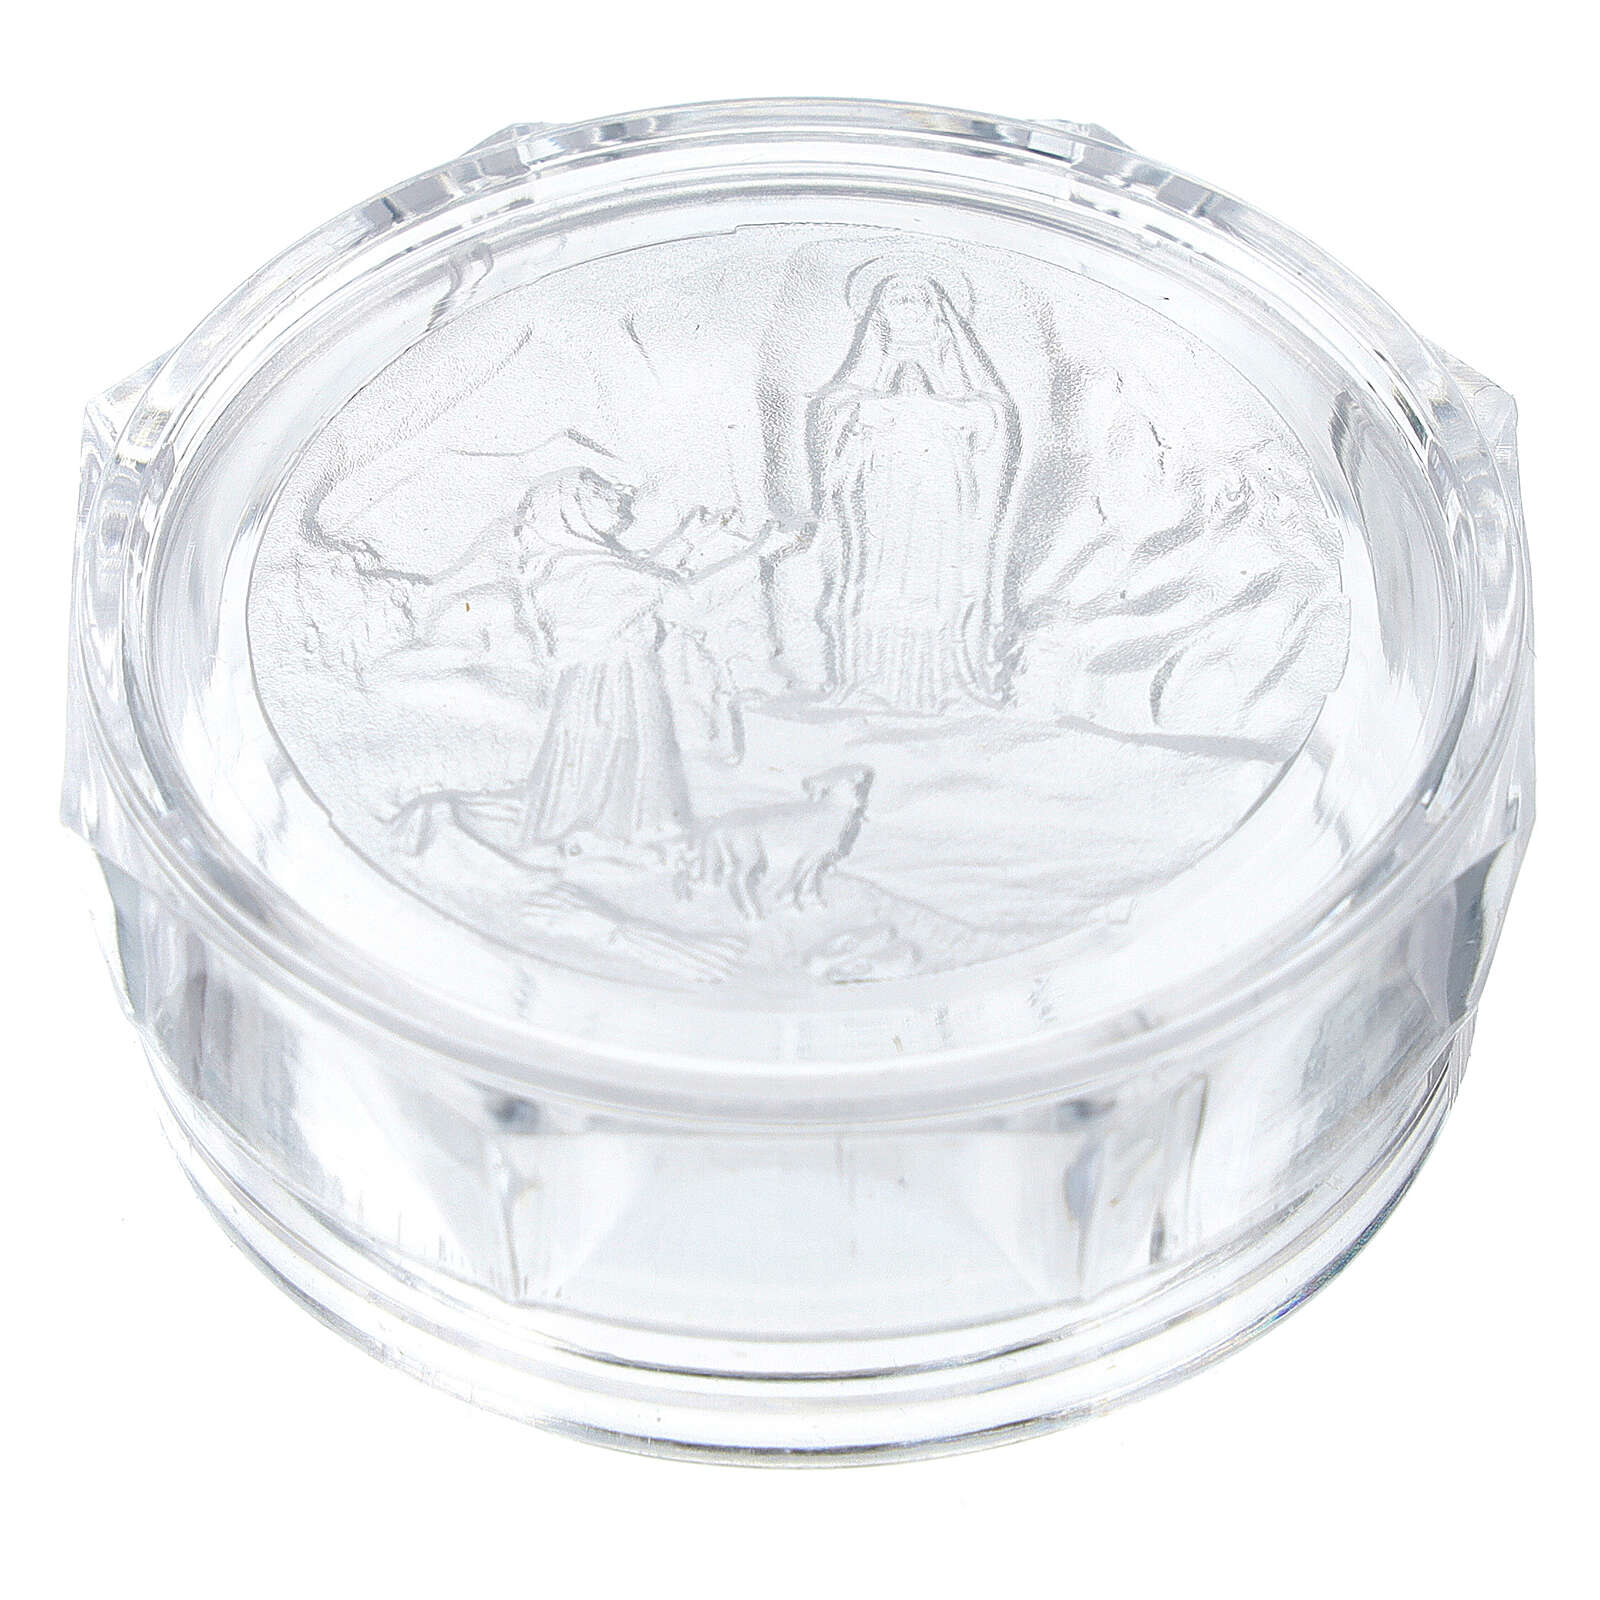 Our Lady of Lourdes rosary box 4